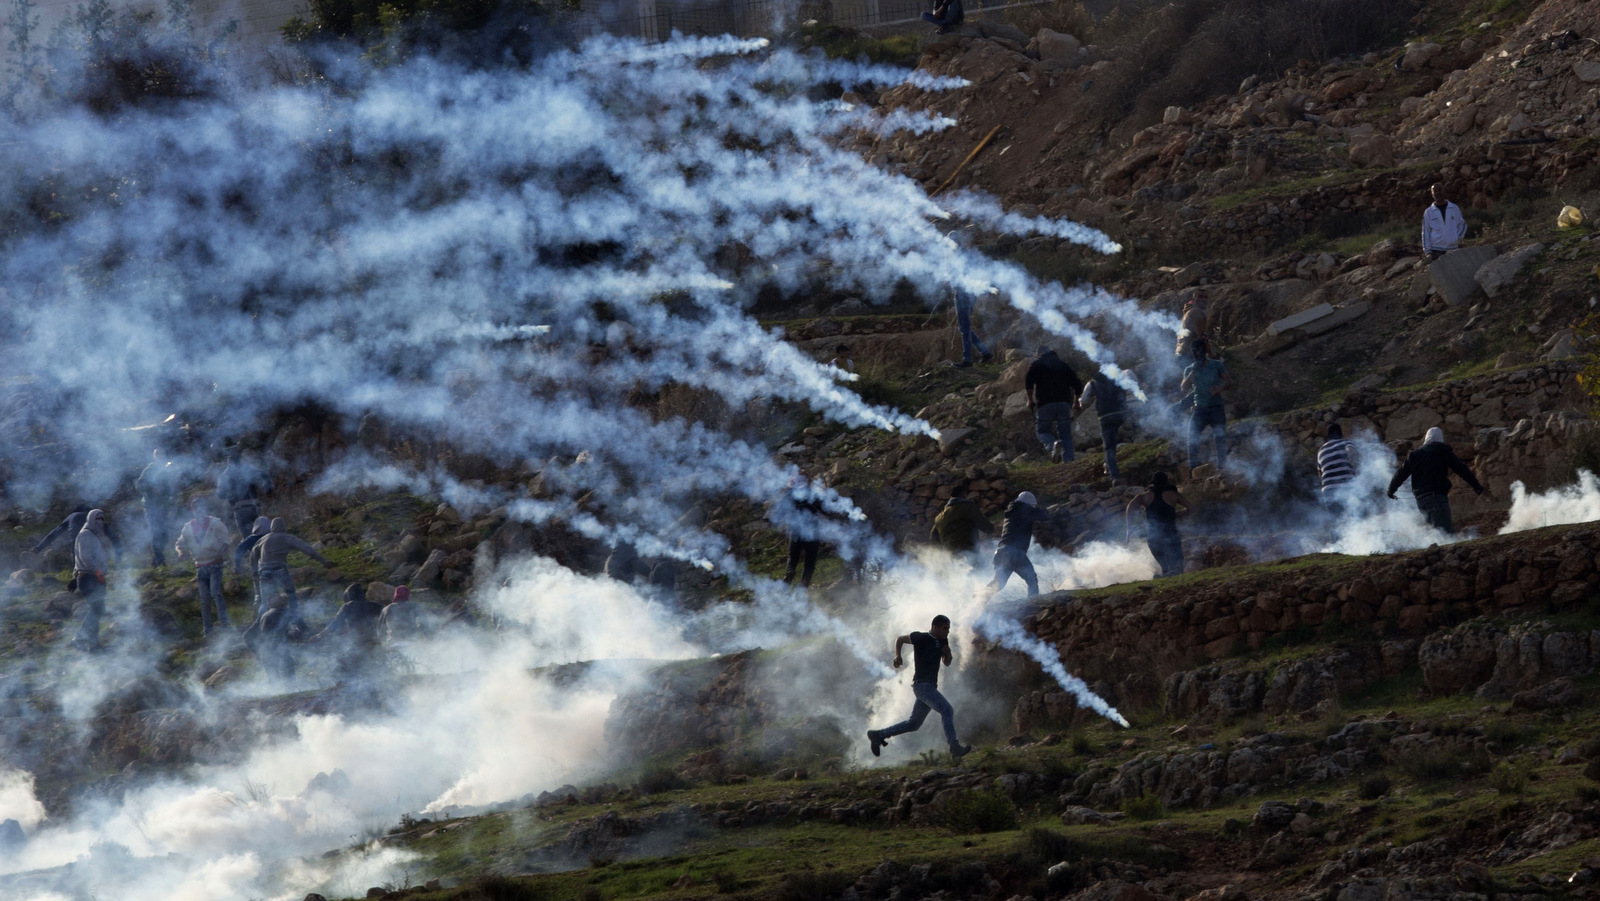 Palestinian protesters run from tear gas fired by Israeli troops during a protest of outside Ofer security prison in the occupied West Bank city of Ramallah. (AP Photo/Majdi Mohammed)